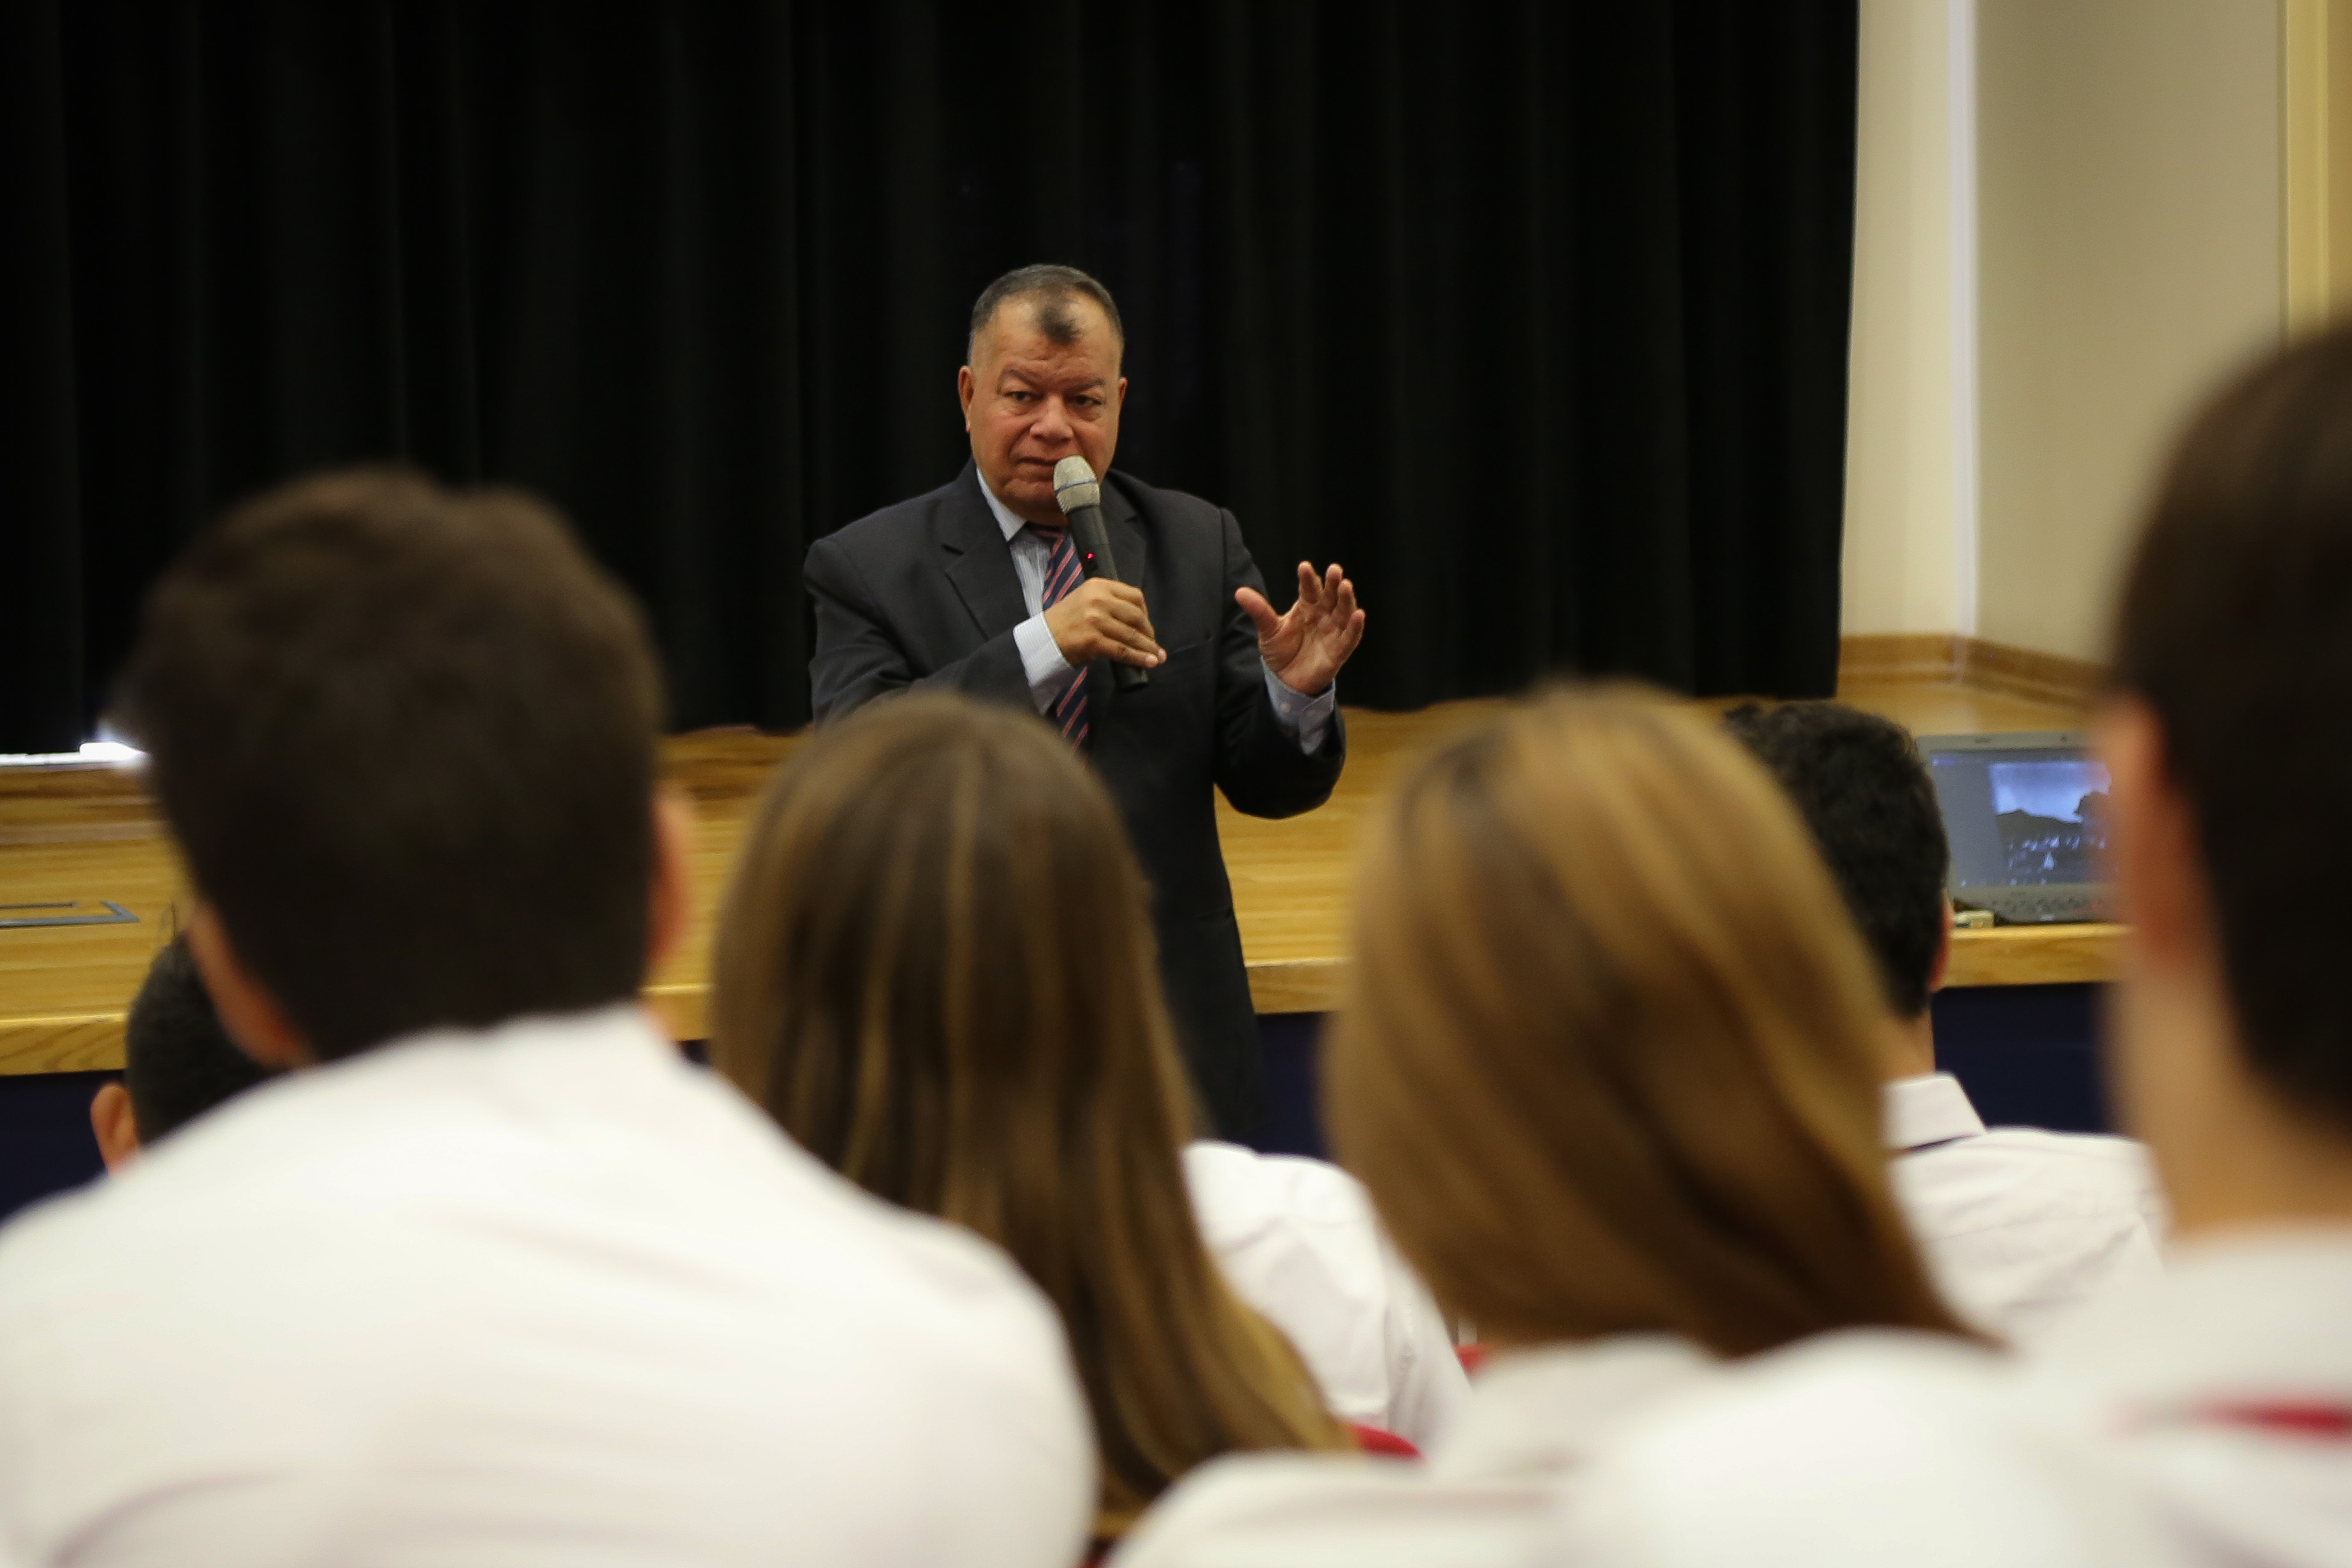 Royal Court consultant speaks to students